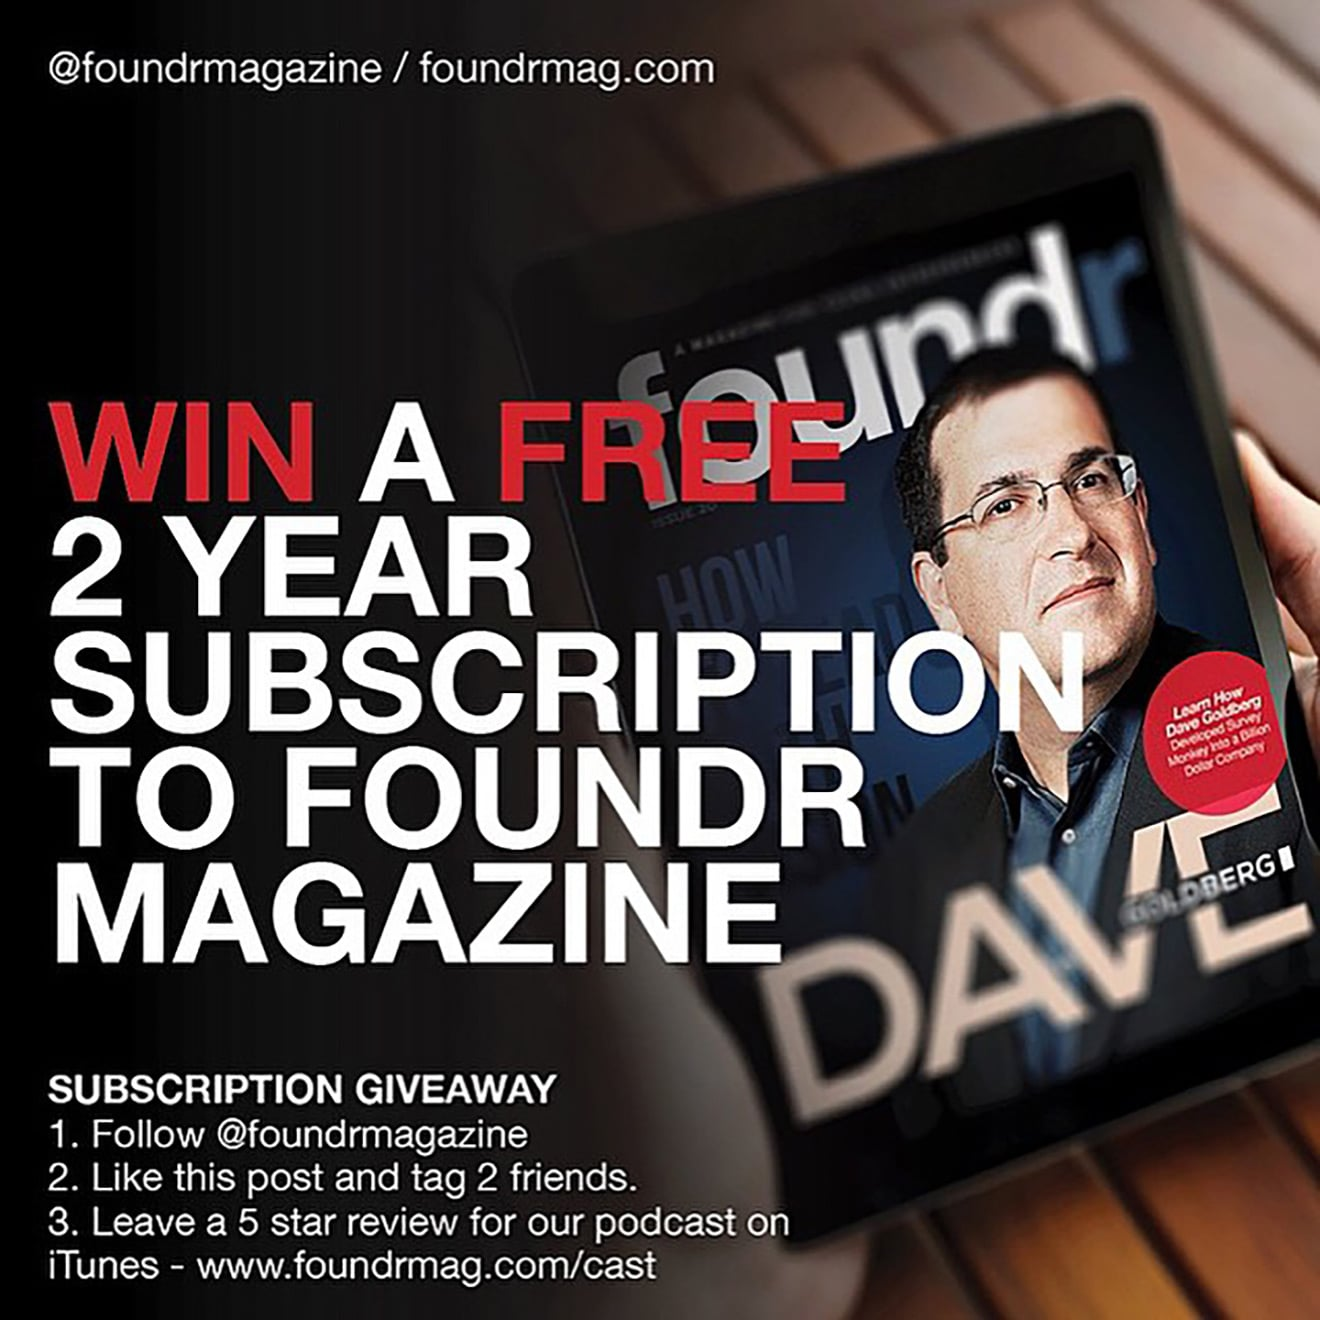 Foundr Magazine Giveaway